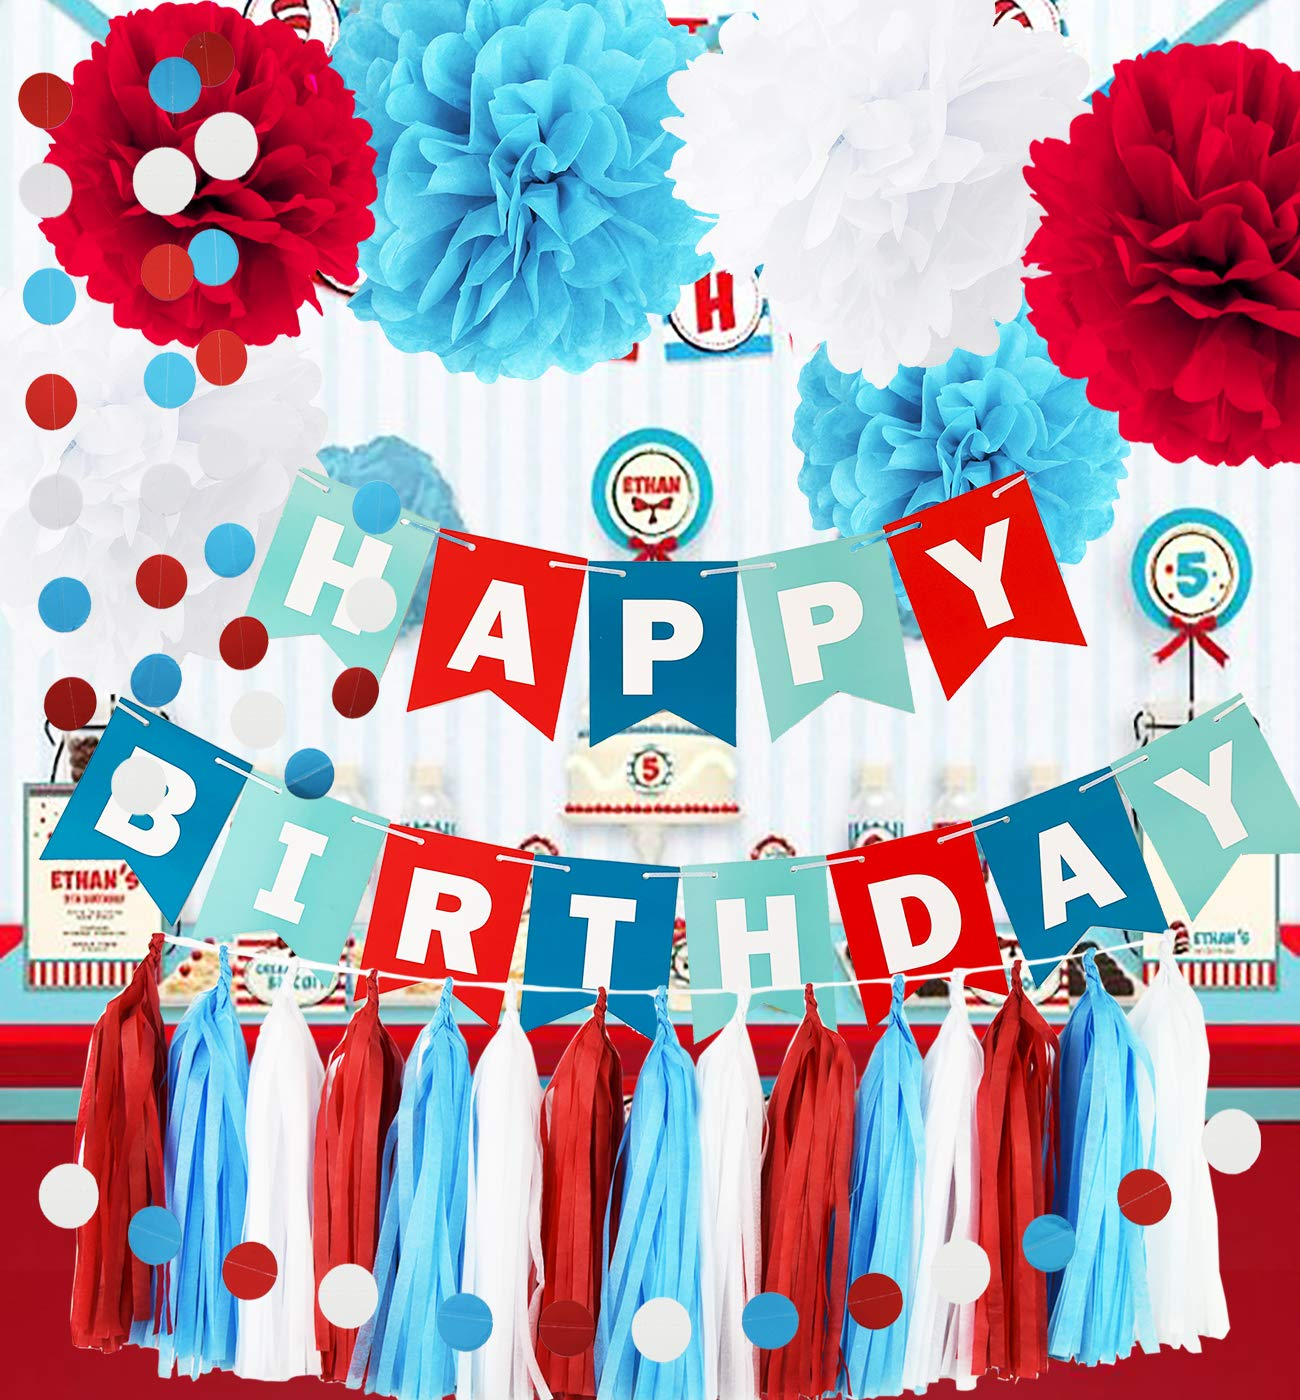 Qian's Party Dr Seuss Cat in The Hat Birthday Party Decorations/Dr Suess Decor Thing 1 and Thing 2 Decorations Turquoise White Red Happy Birthday Banner Airplane Birthday Decorations by Qian's Party (Image #1)